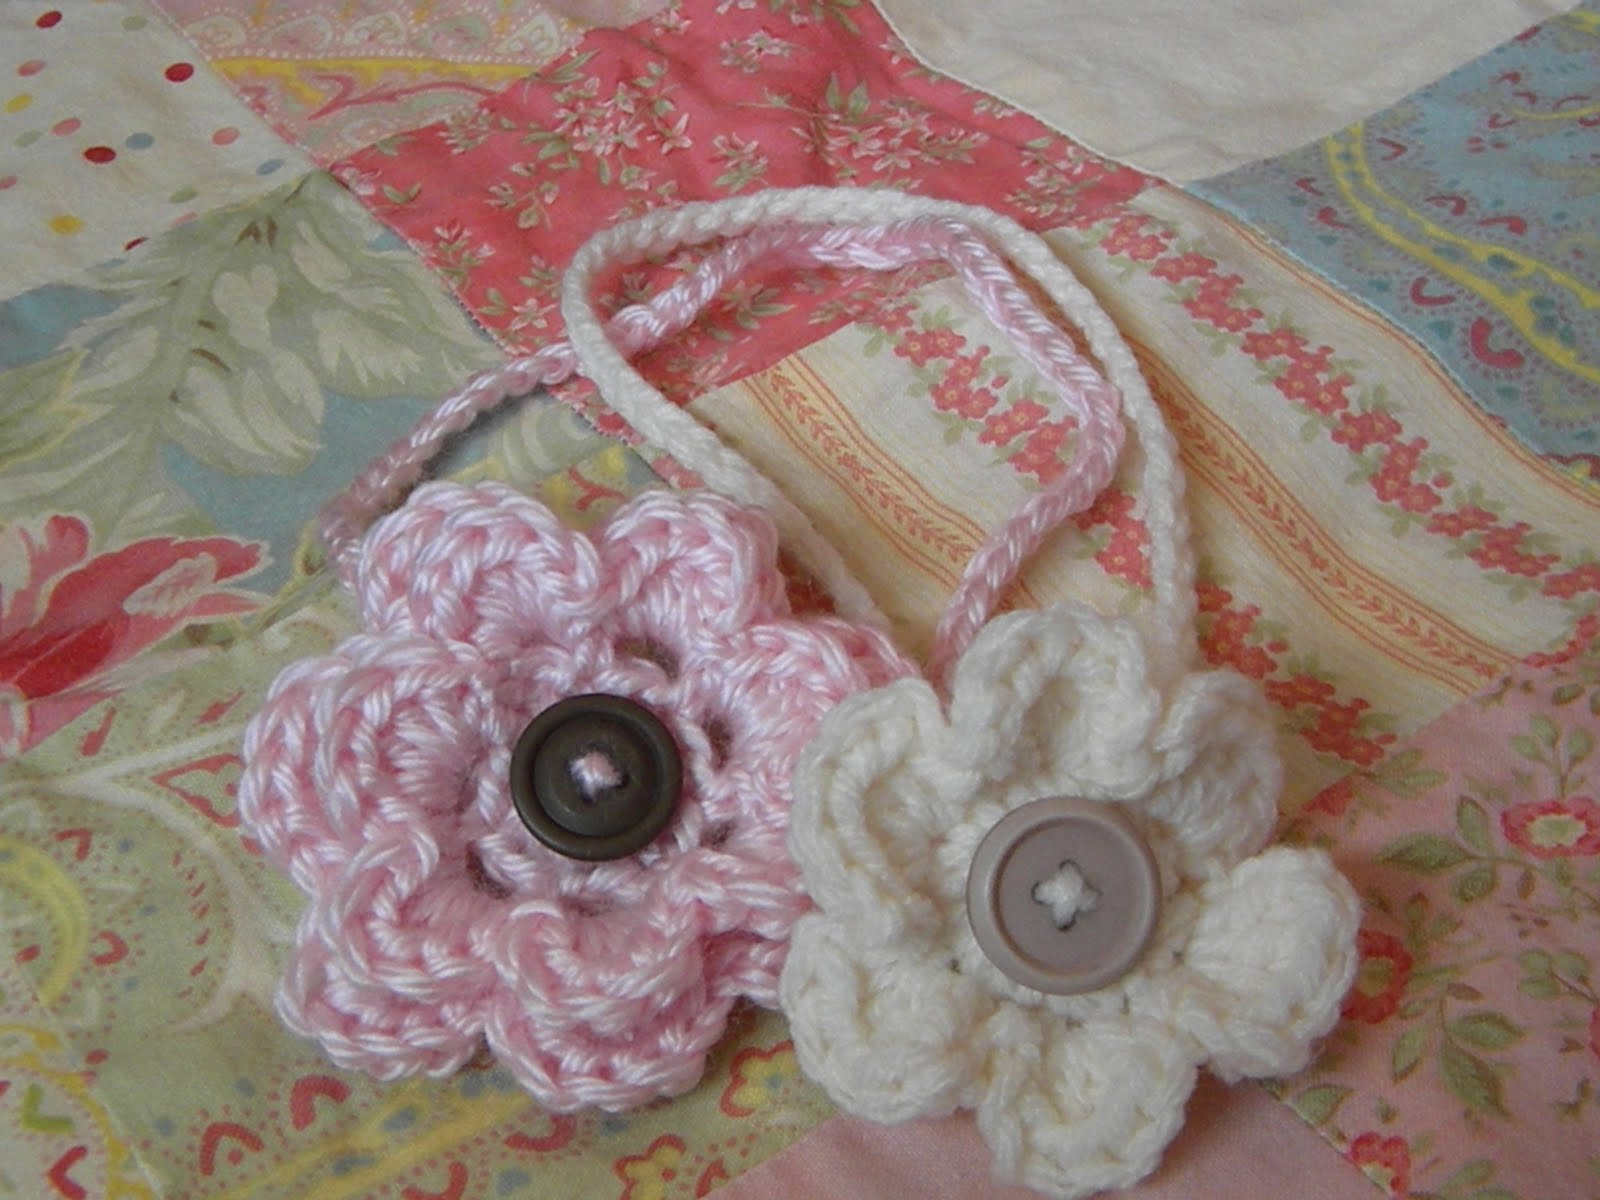 Crochet Flowers Patterns Headbands : Knotty Knotty Crochet: Little Lizzys Headband FREE PATTERN